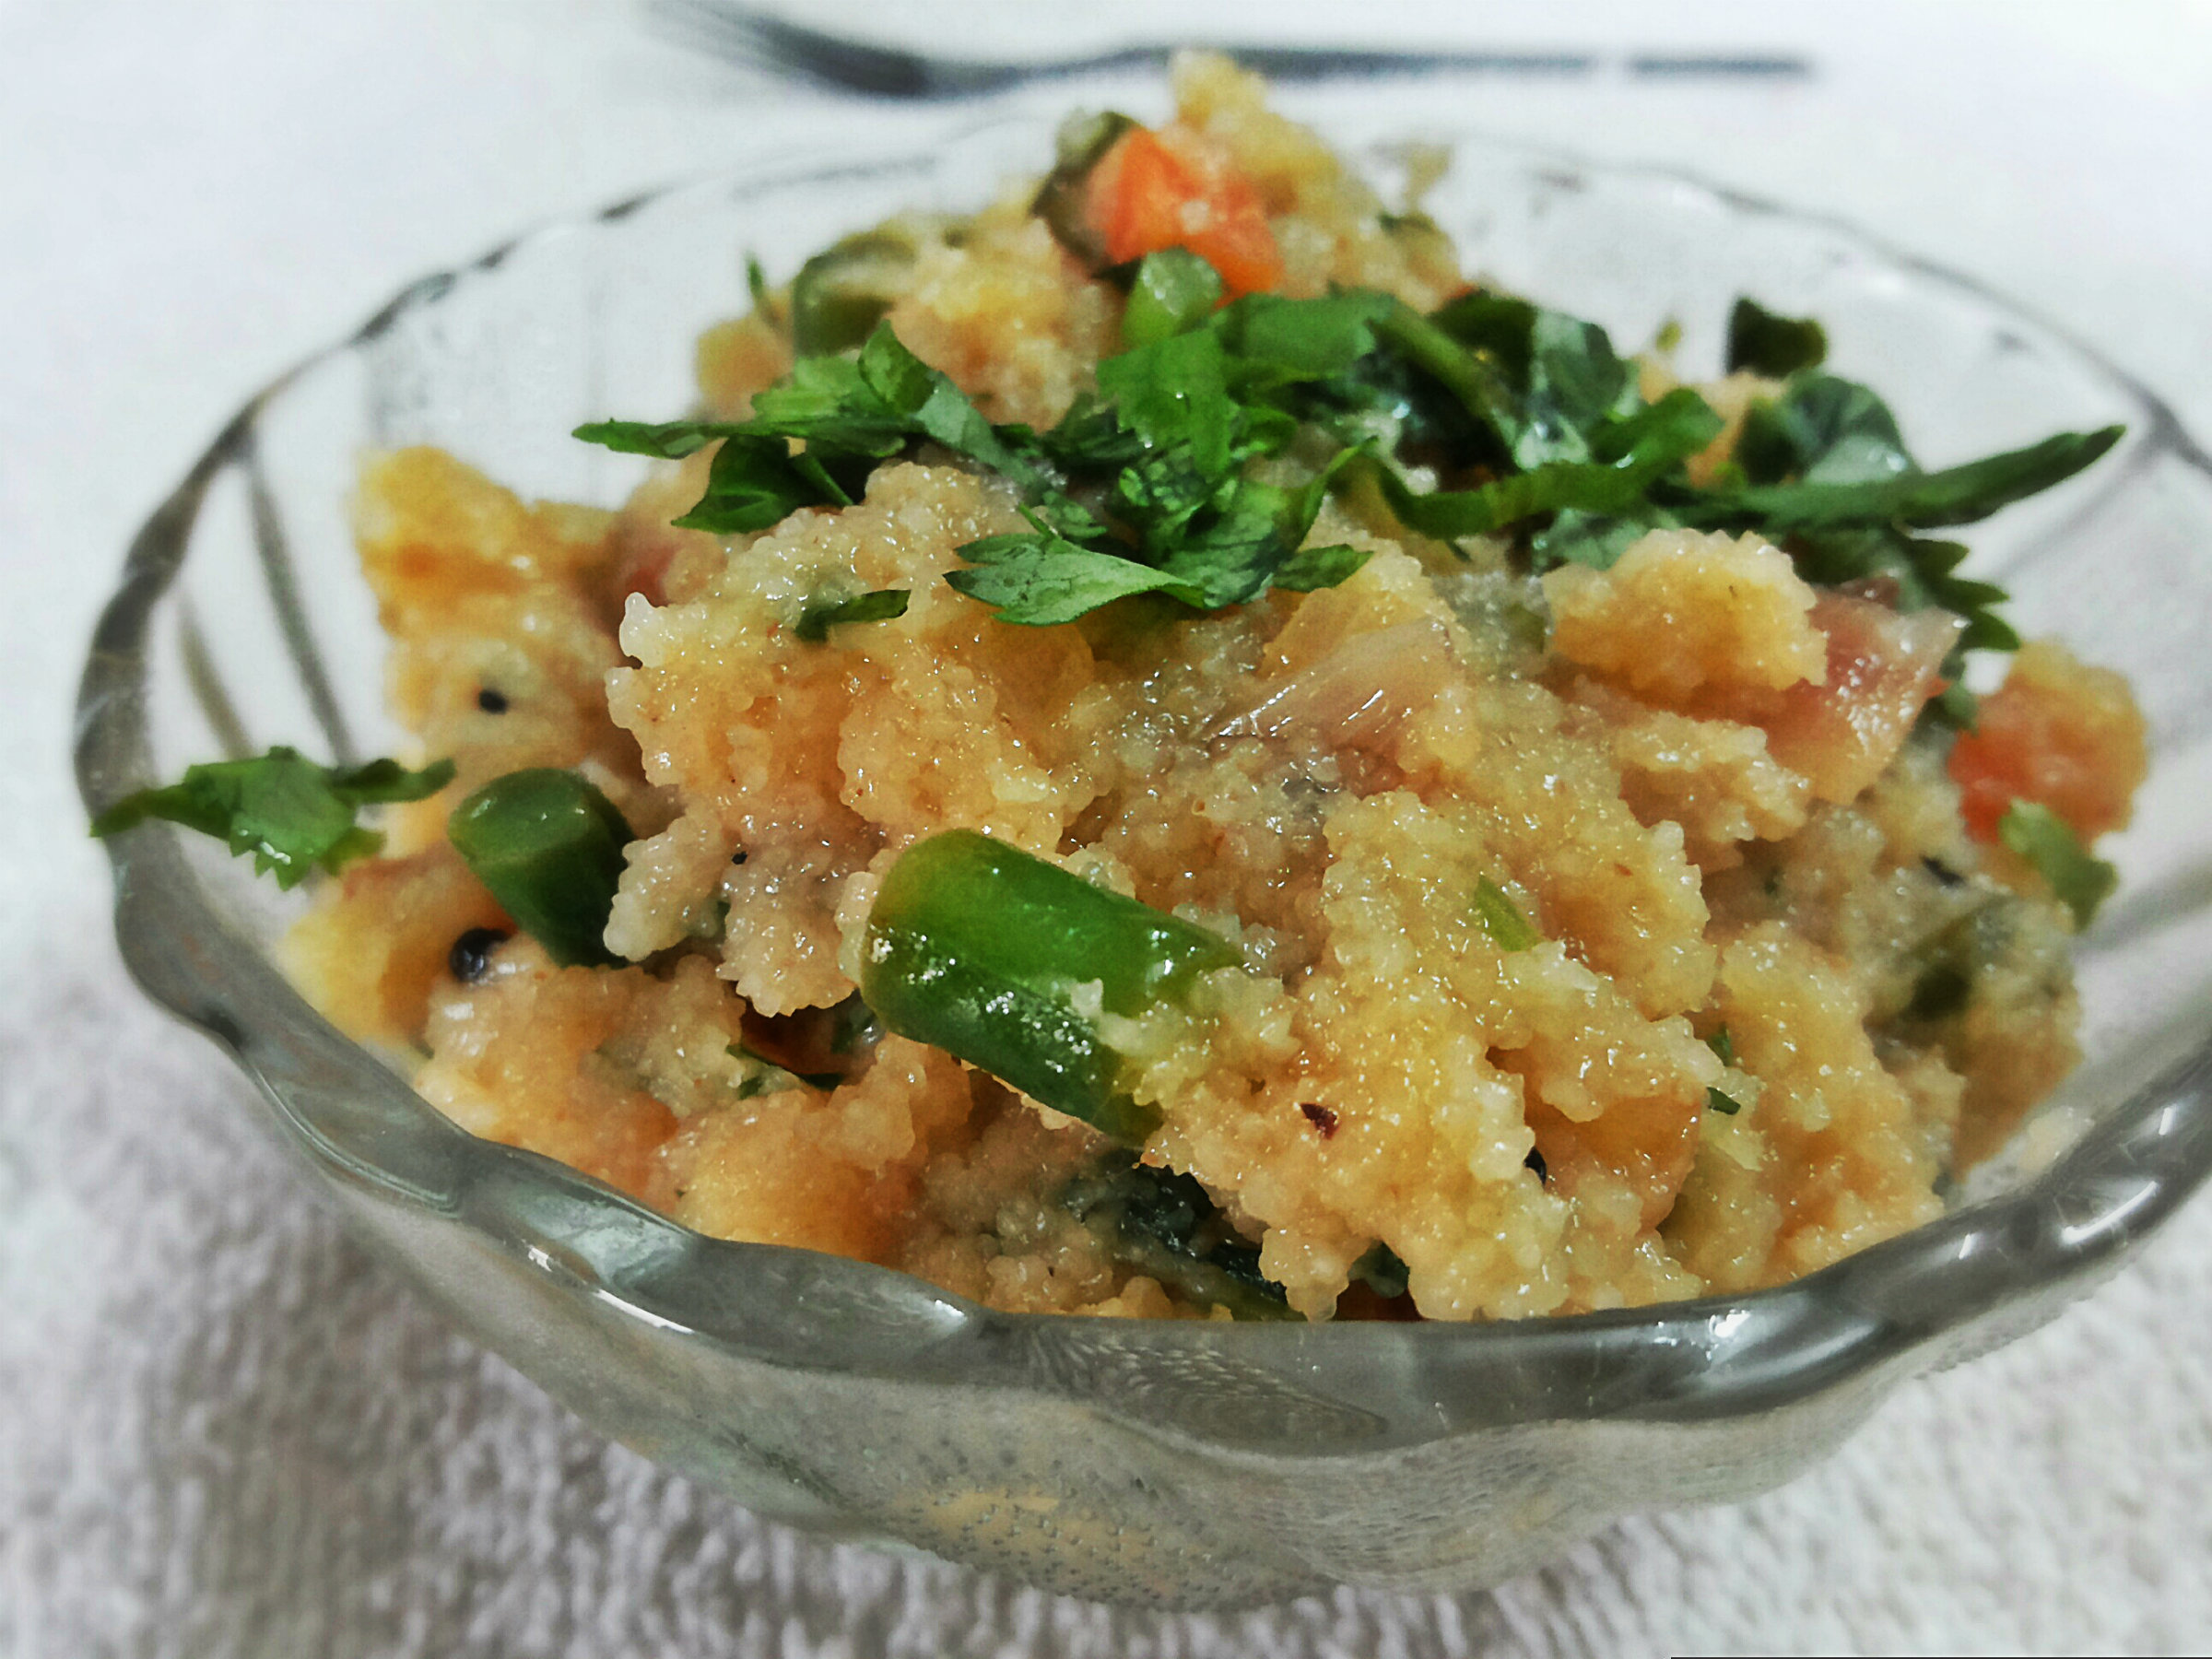 125785-south-indian-breakfast-green-beans-and-carrot-upma